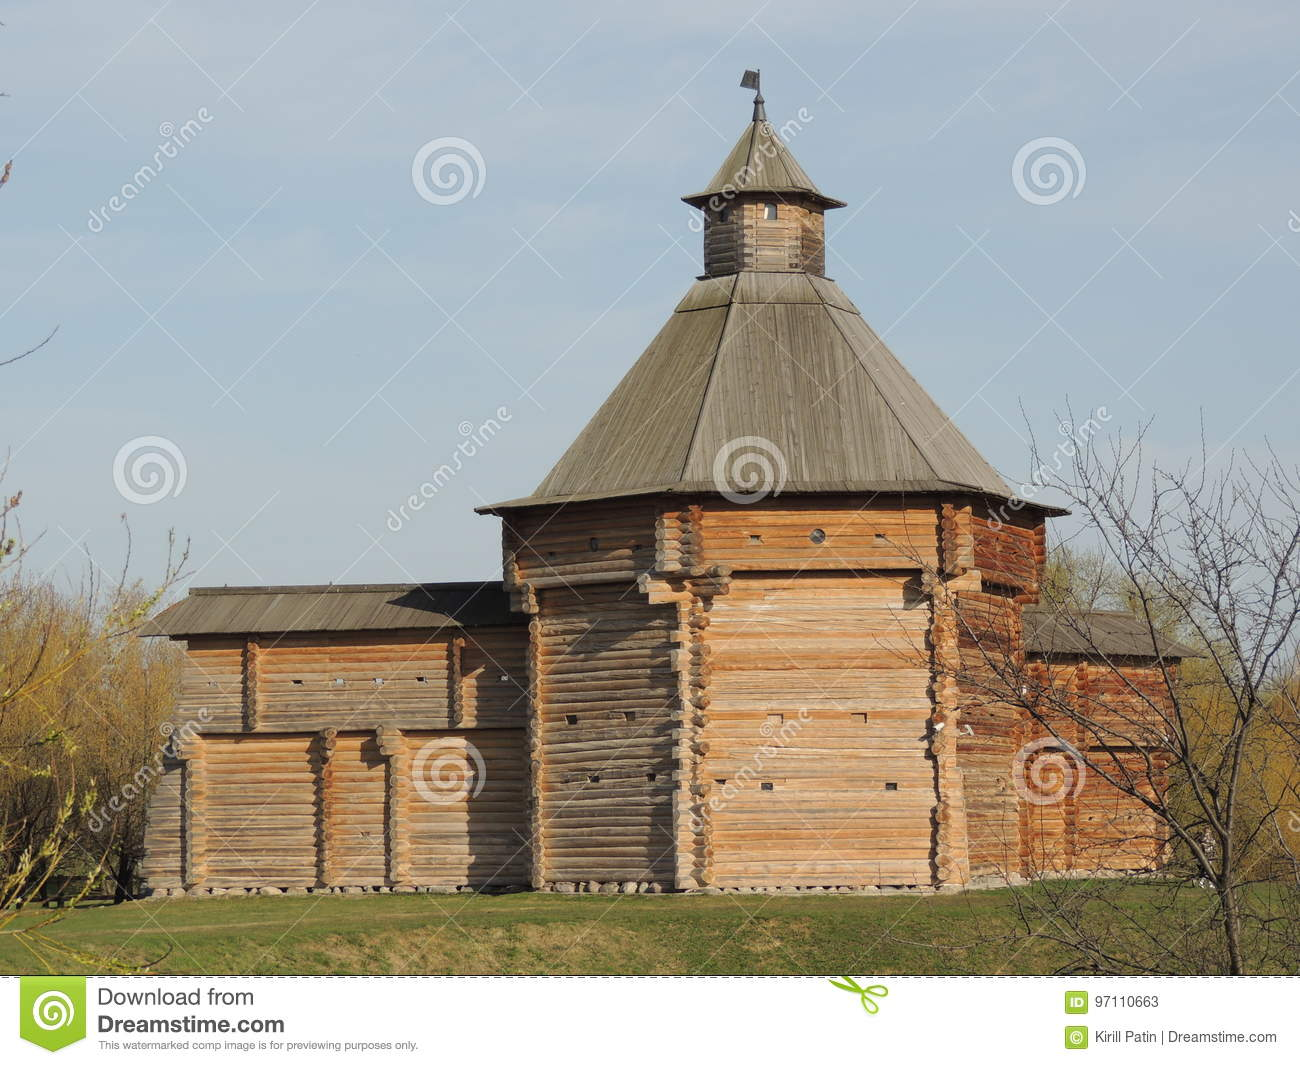 Tower from the Sumskoy Ostrog Fortress Stock Image - Image of monasteryntower, russia: 97110663